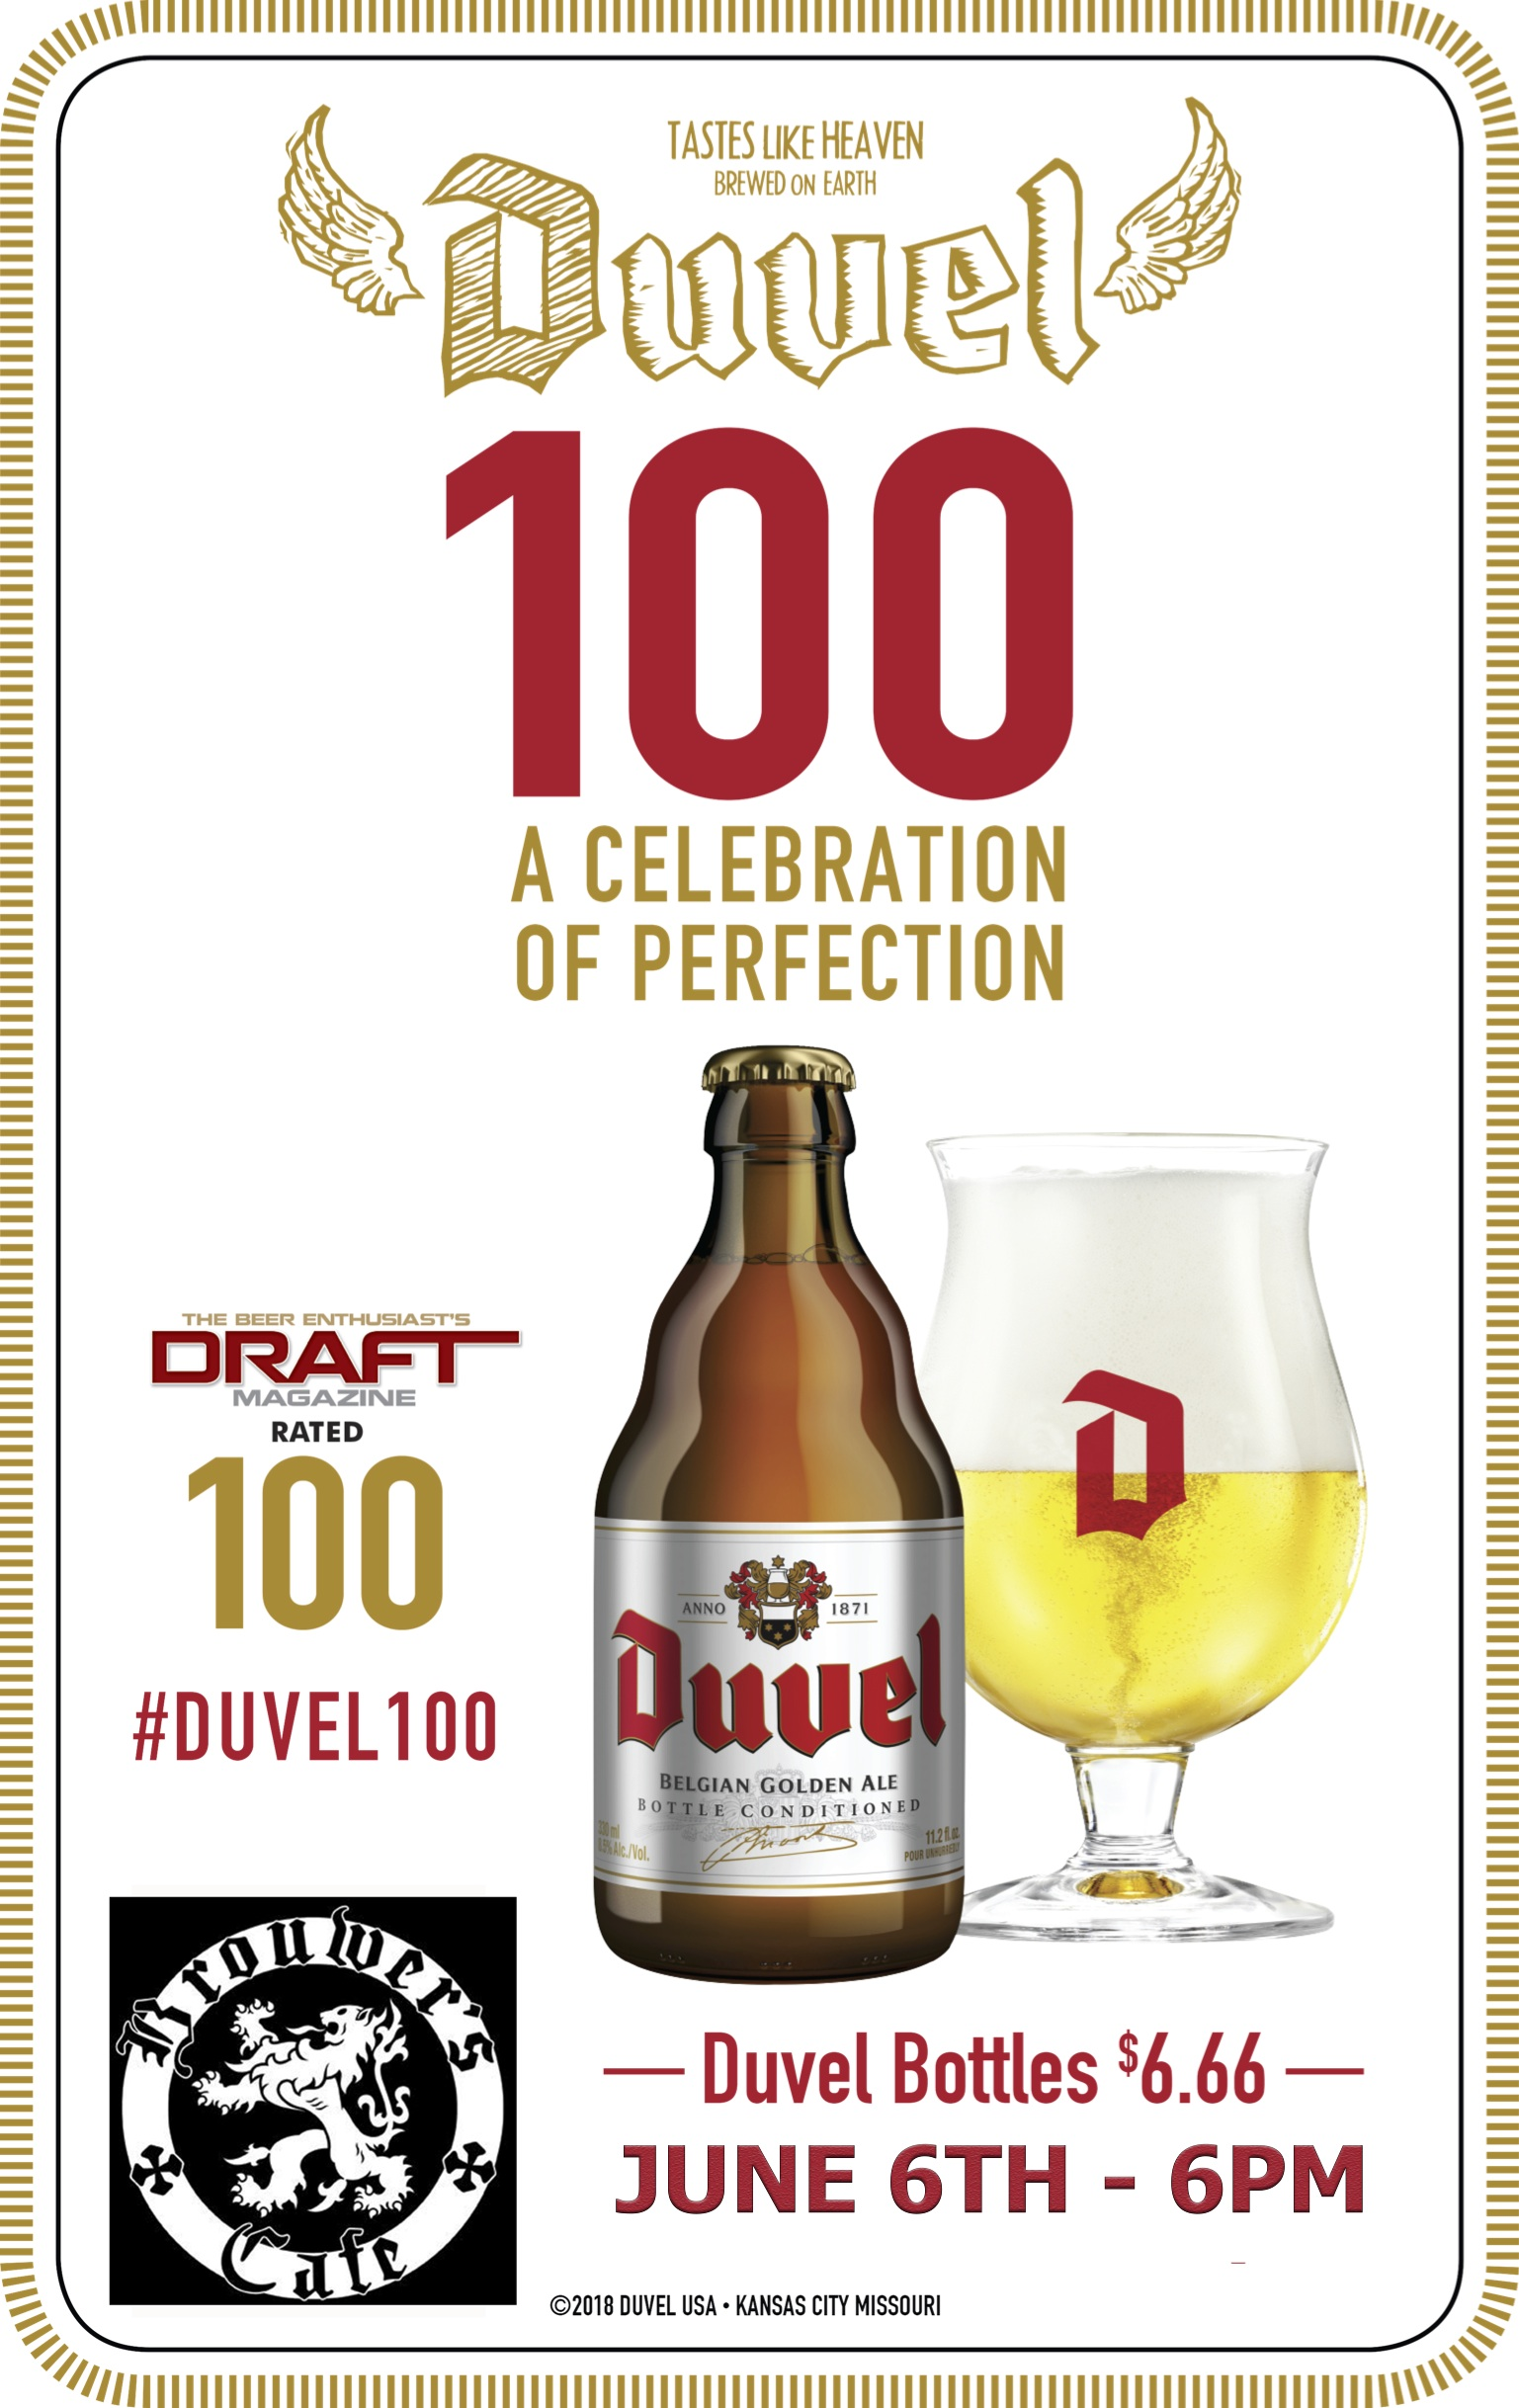 Wednesday, June 6th @ 6pm.   A Night With Duvel,  Learn the perfect pour! Only $6.66 a bottle